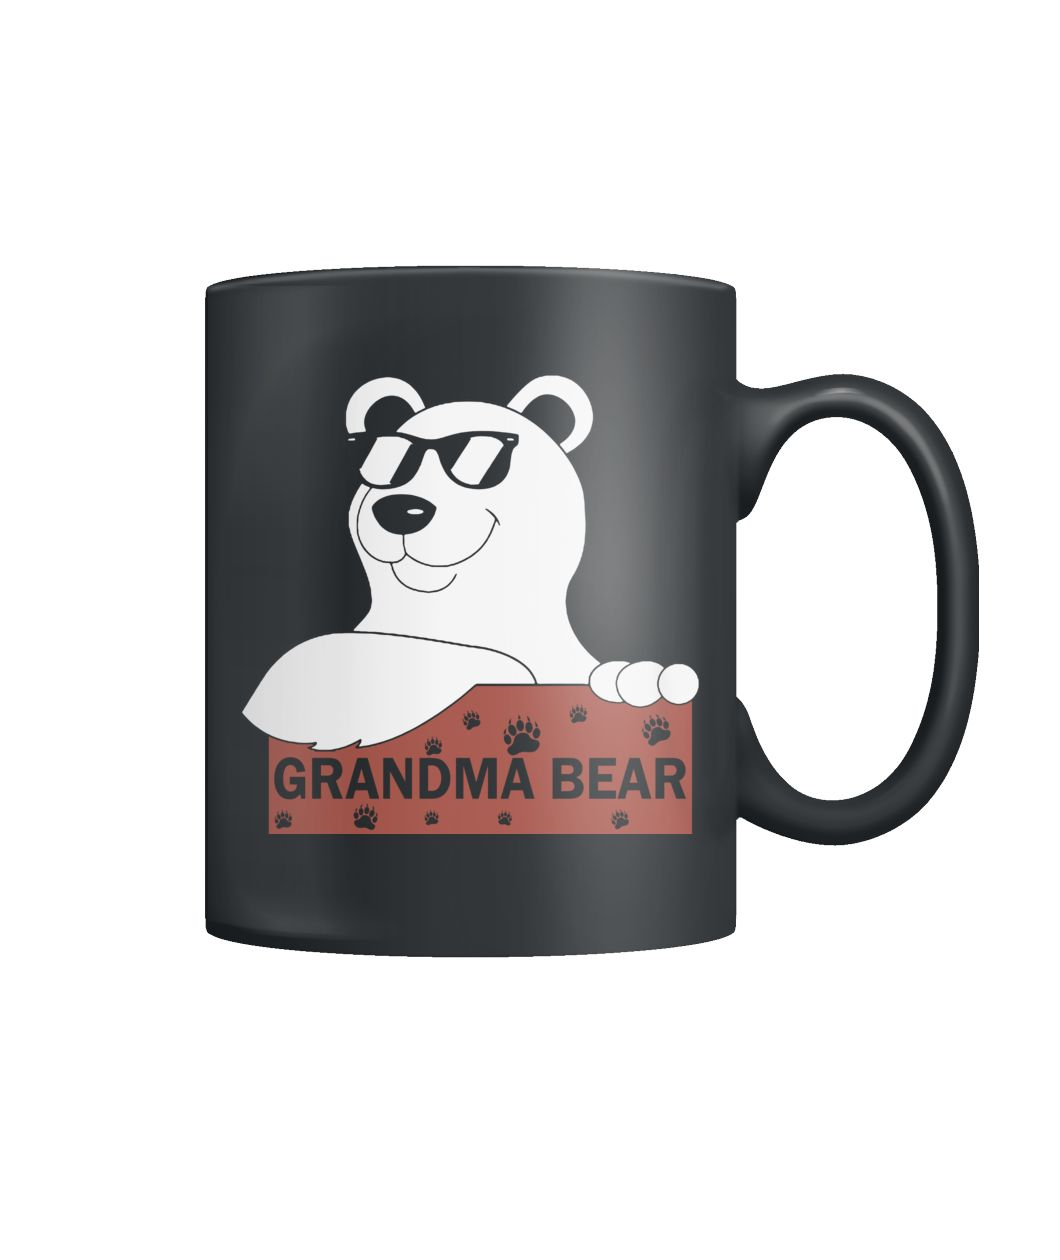 Gramma bear mug Color Coffee Mug